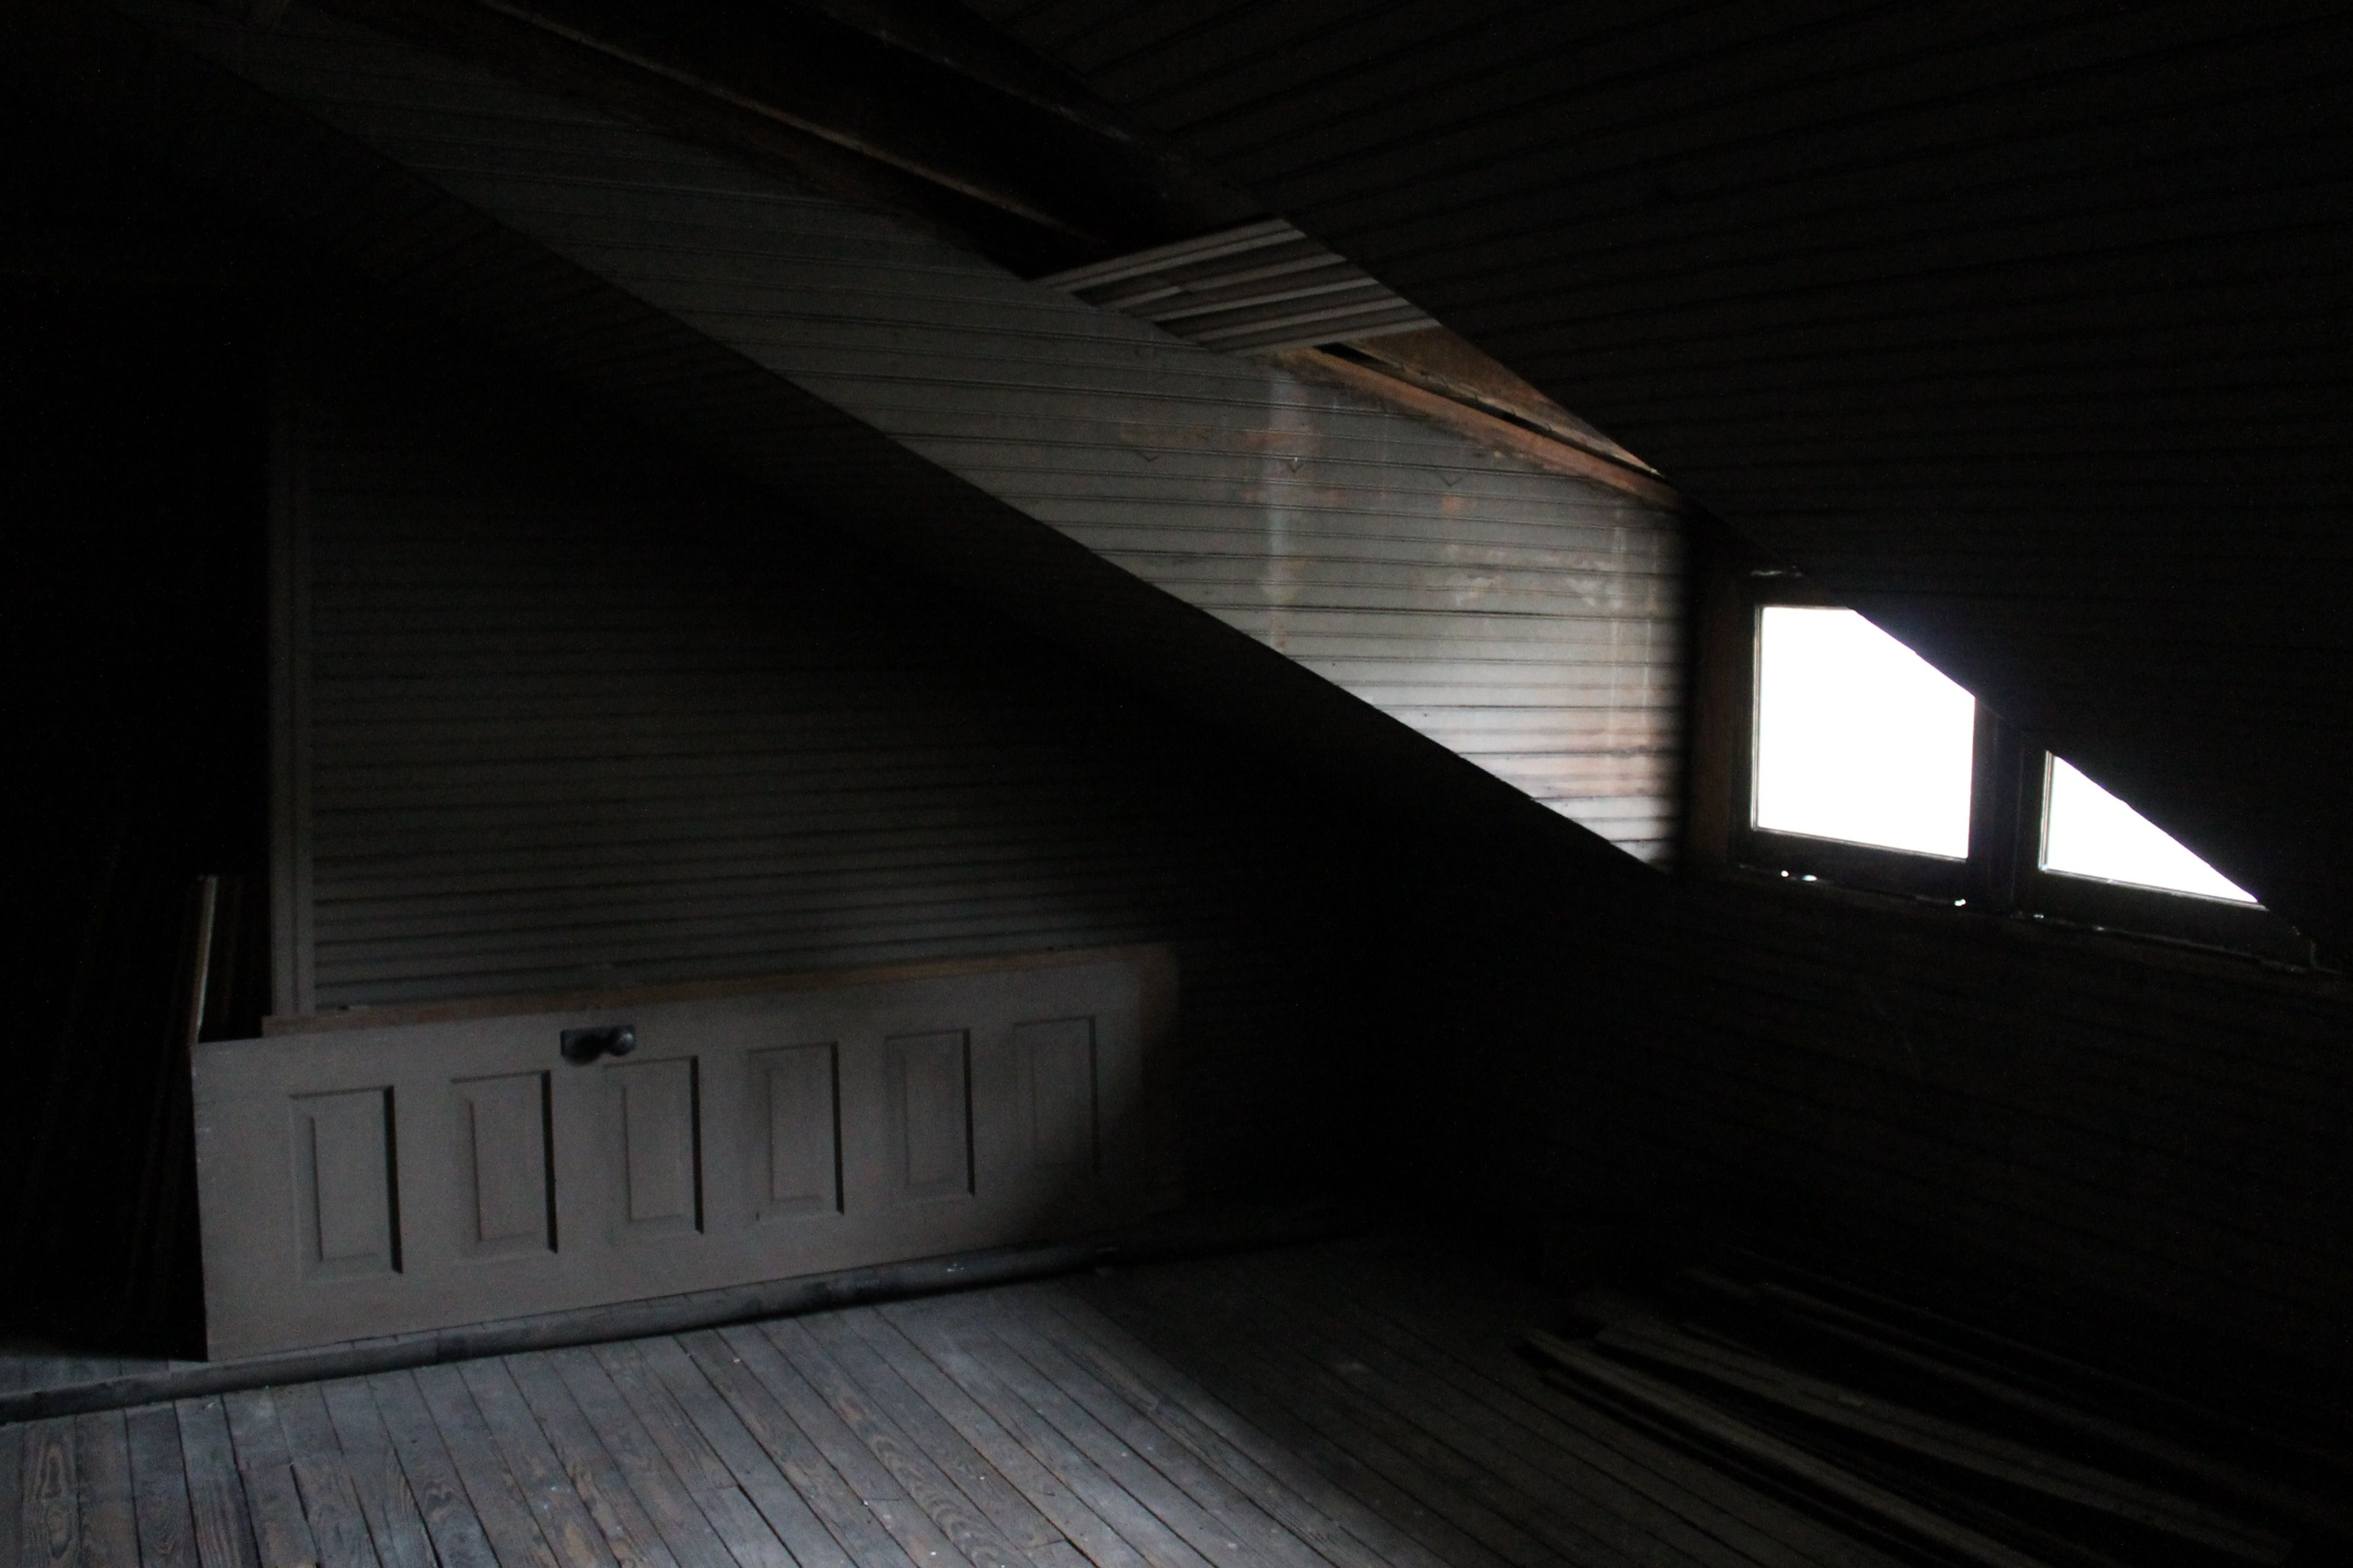 Attic Undone Bright Rooms Attic Old Abandoned Houses